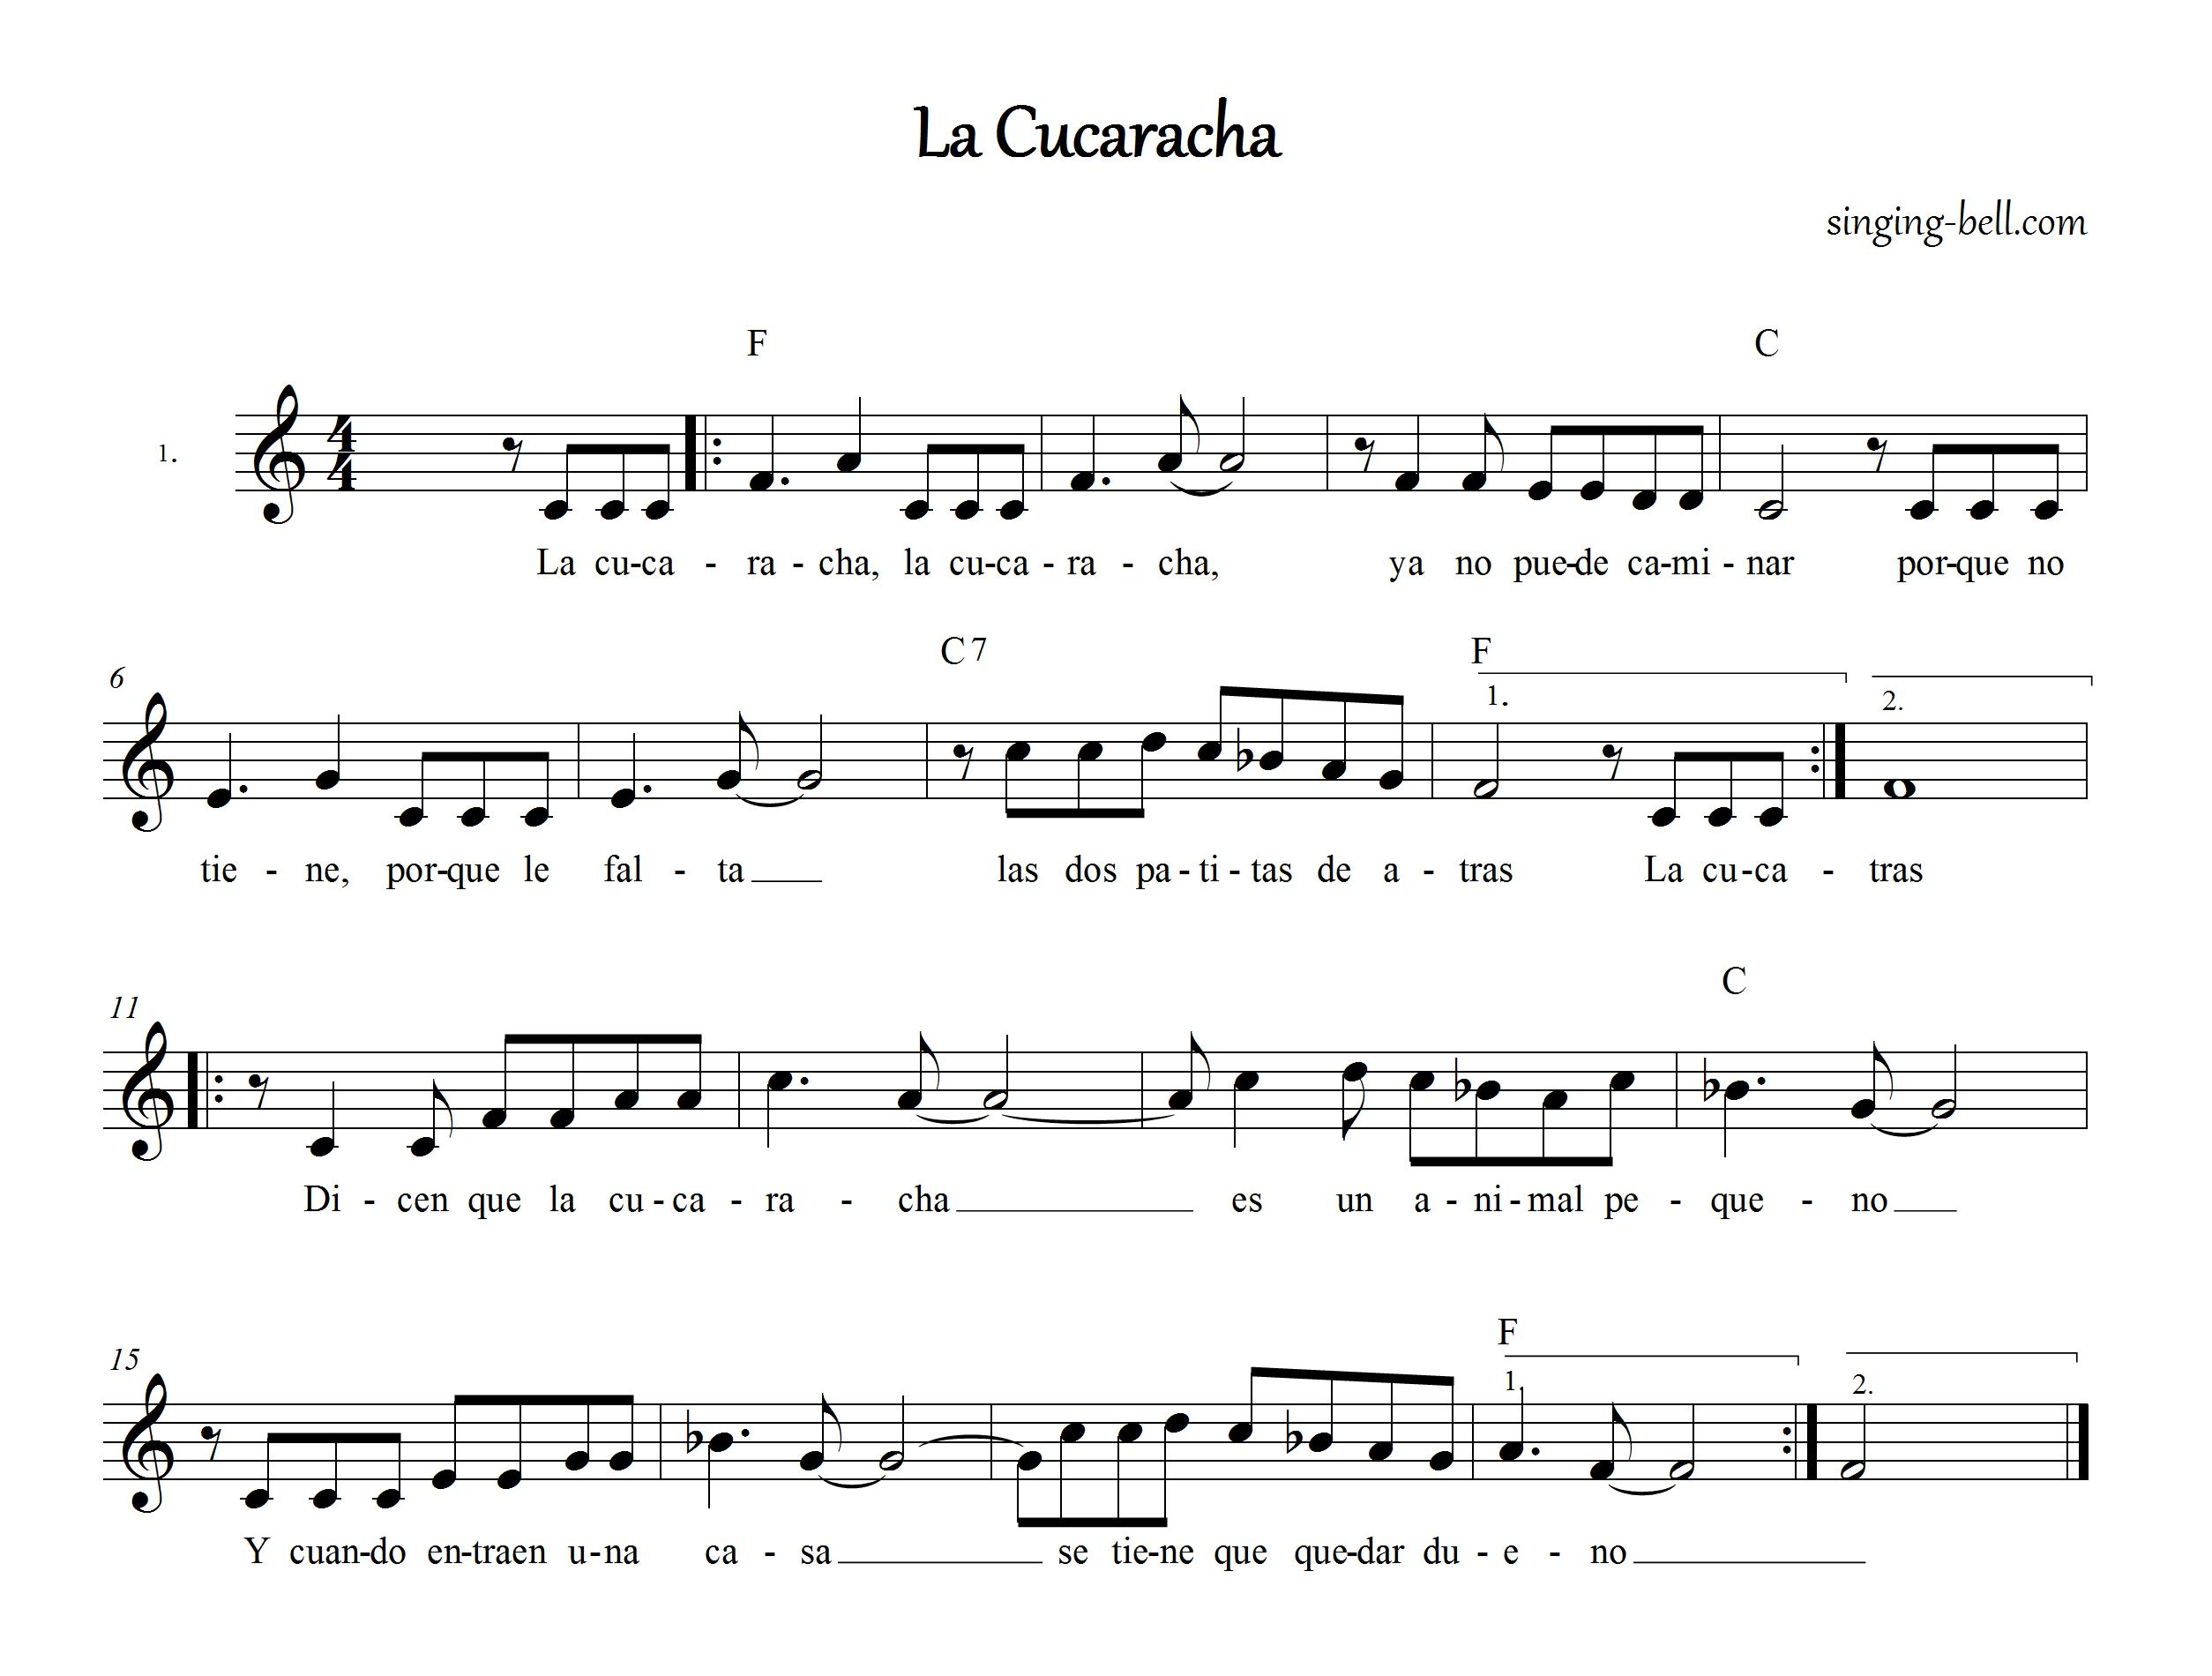 La Cucaracha_singing-bel